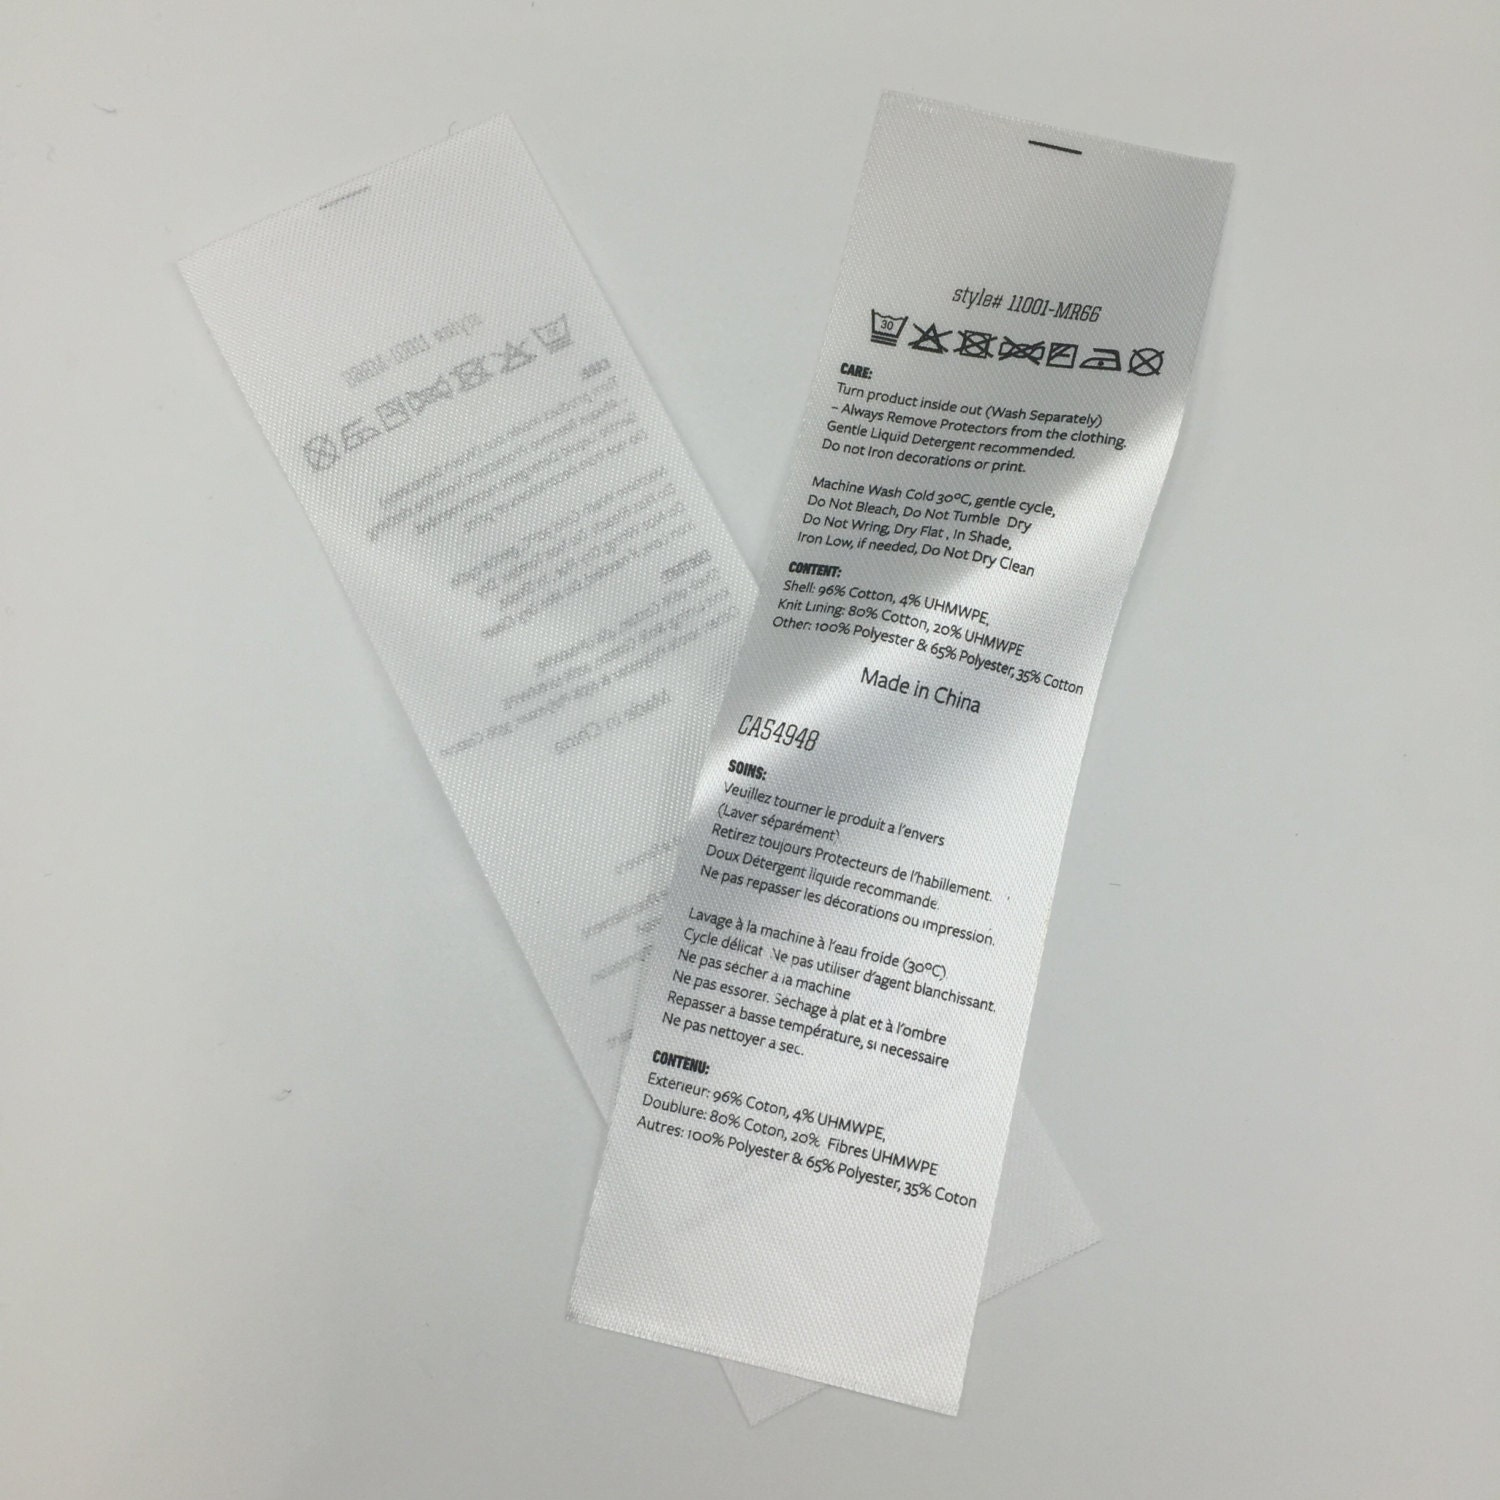 150 Custom Printed Fabric Labels ,Satin Folded Care Label, Black Printed on  white satin